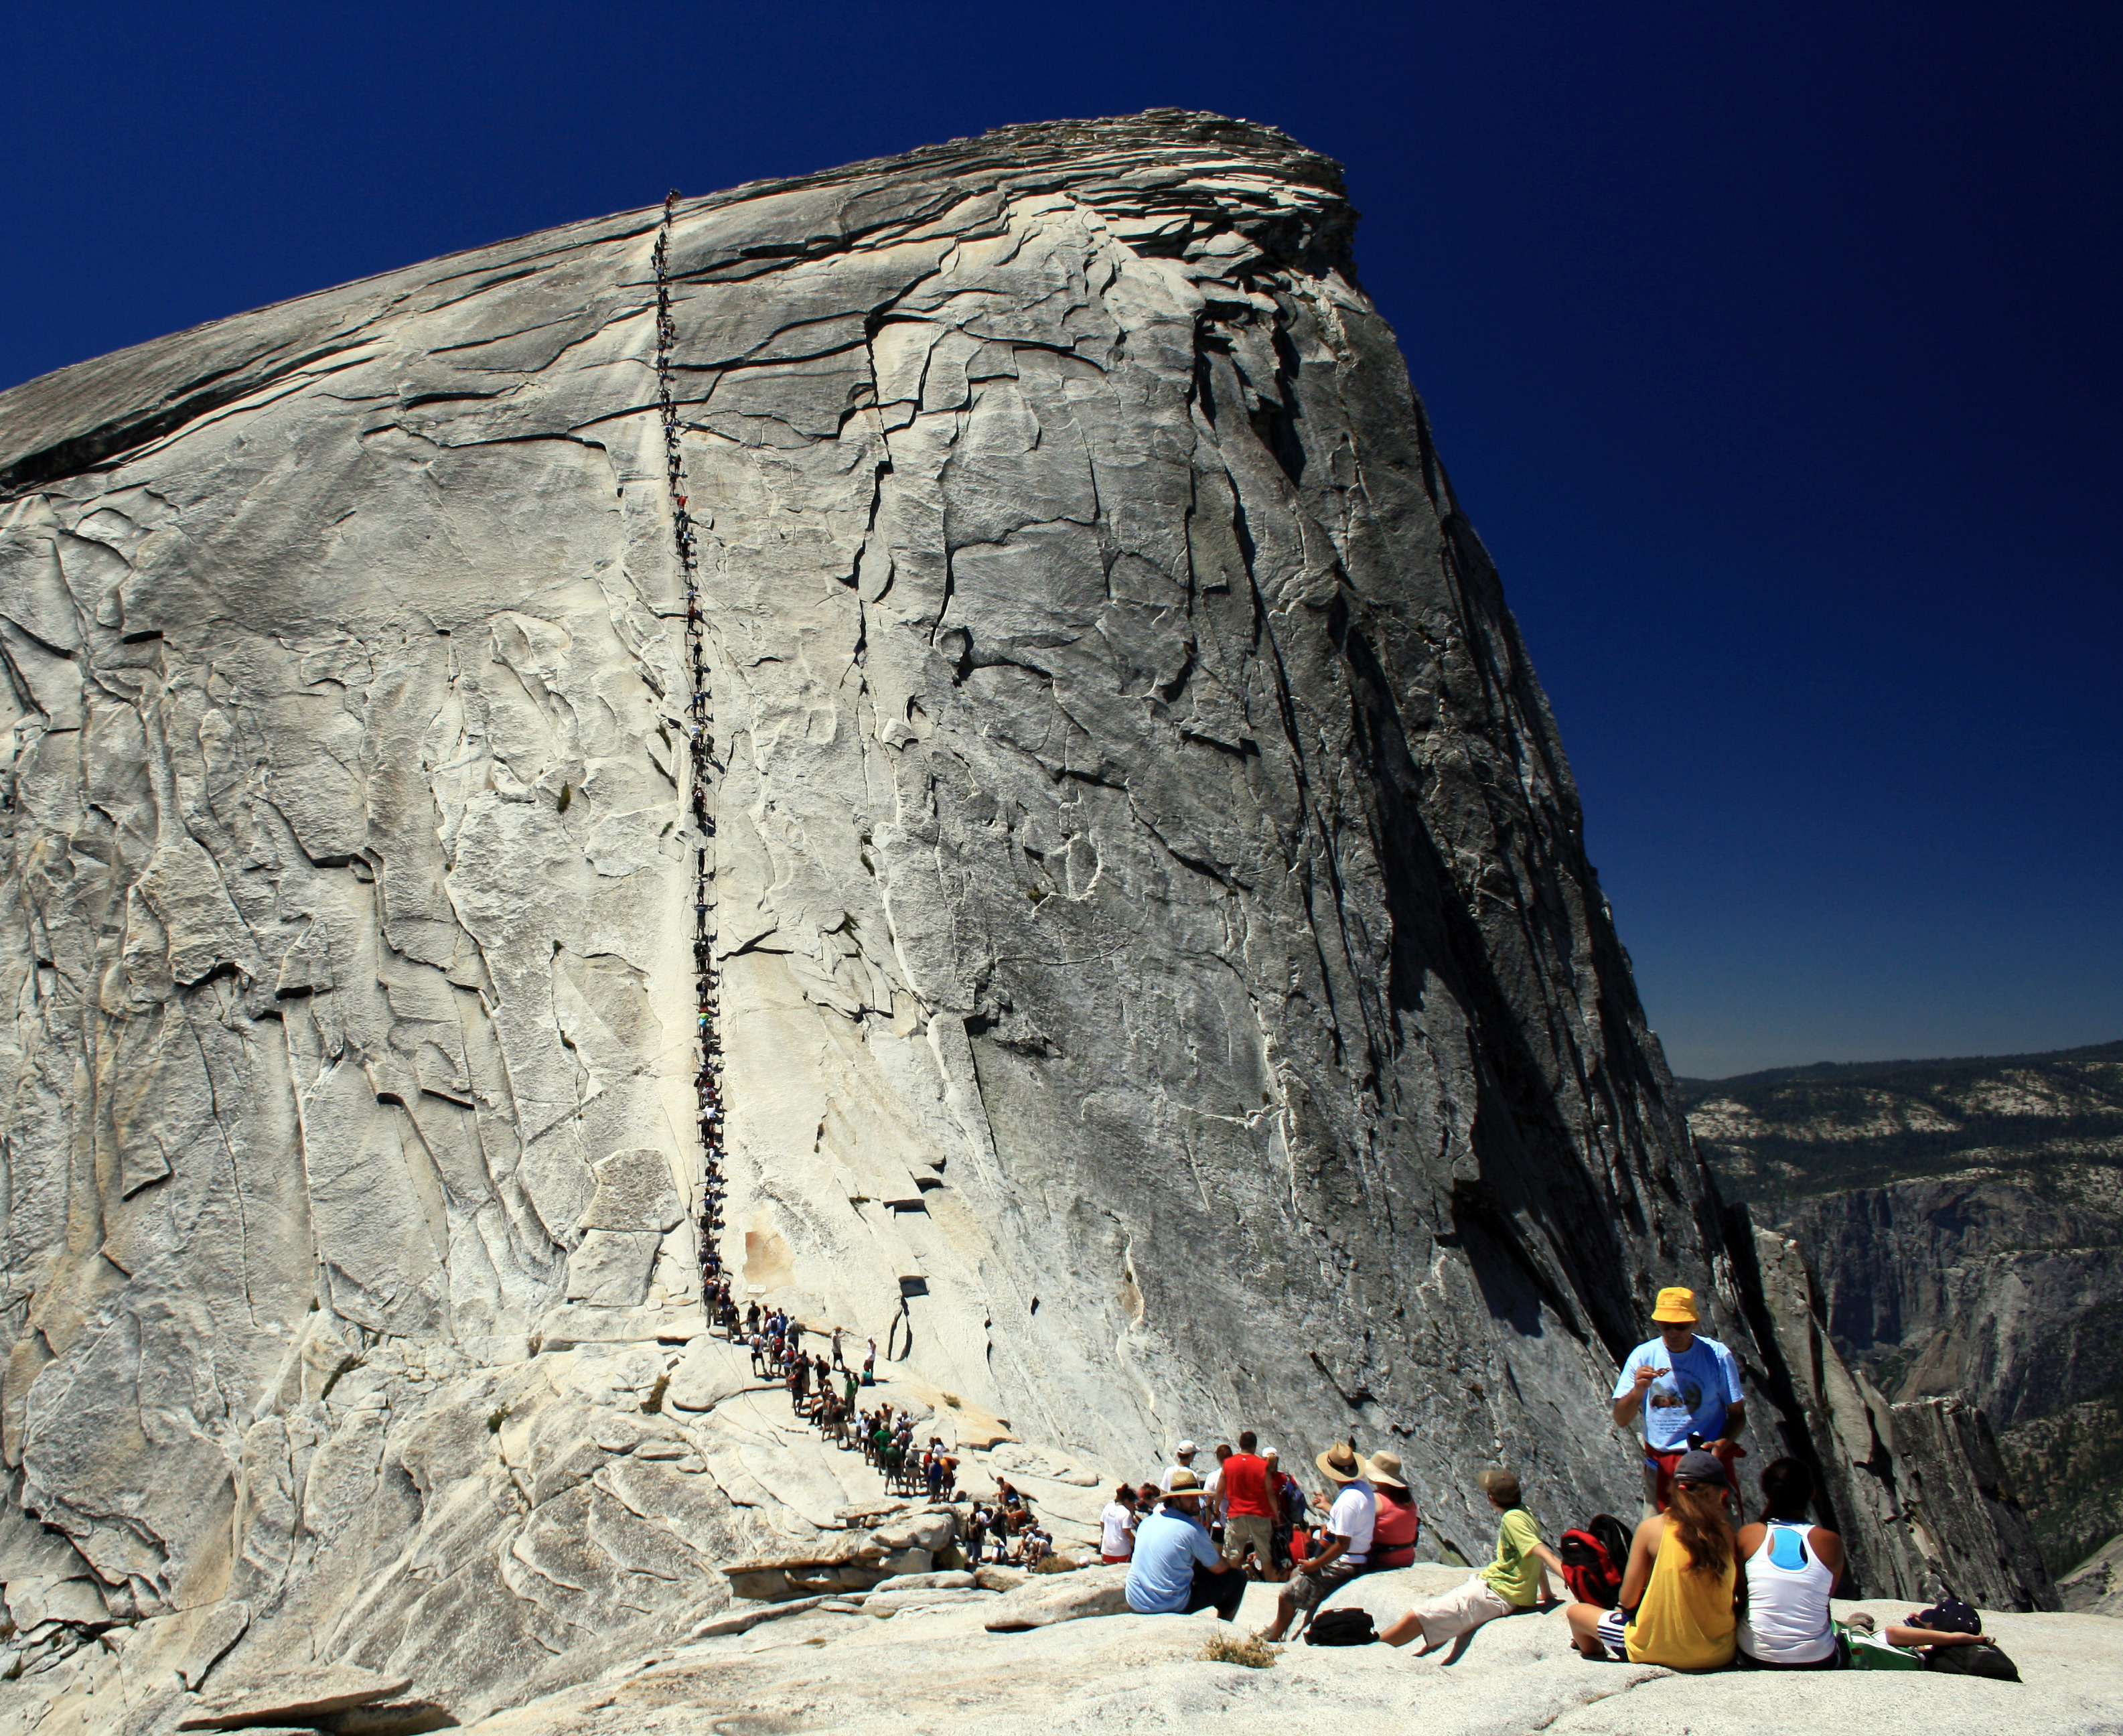 Visitors hiking up Half Dome at Yosemite